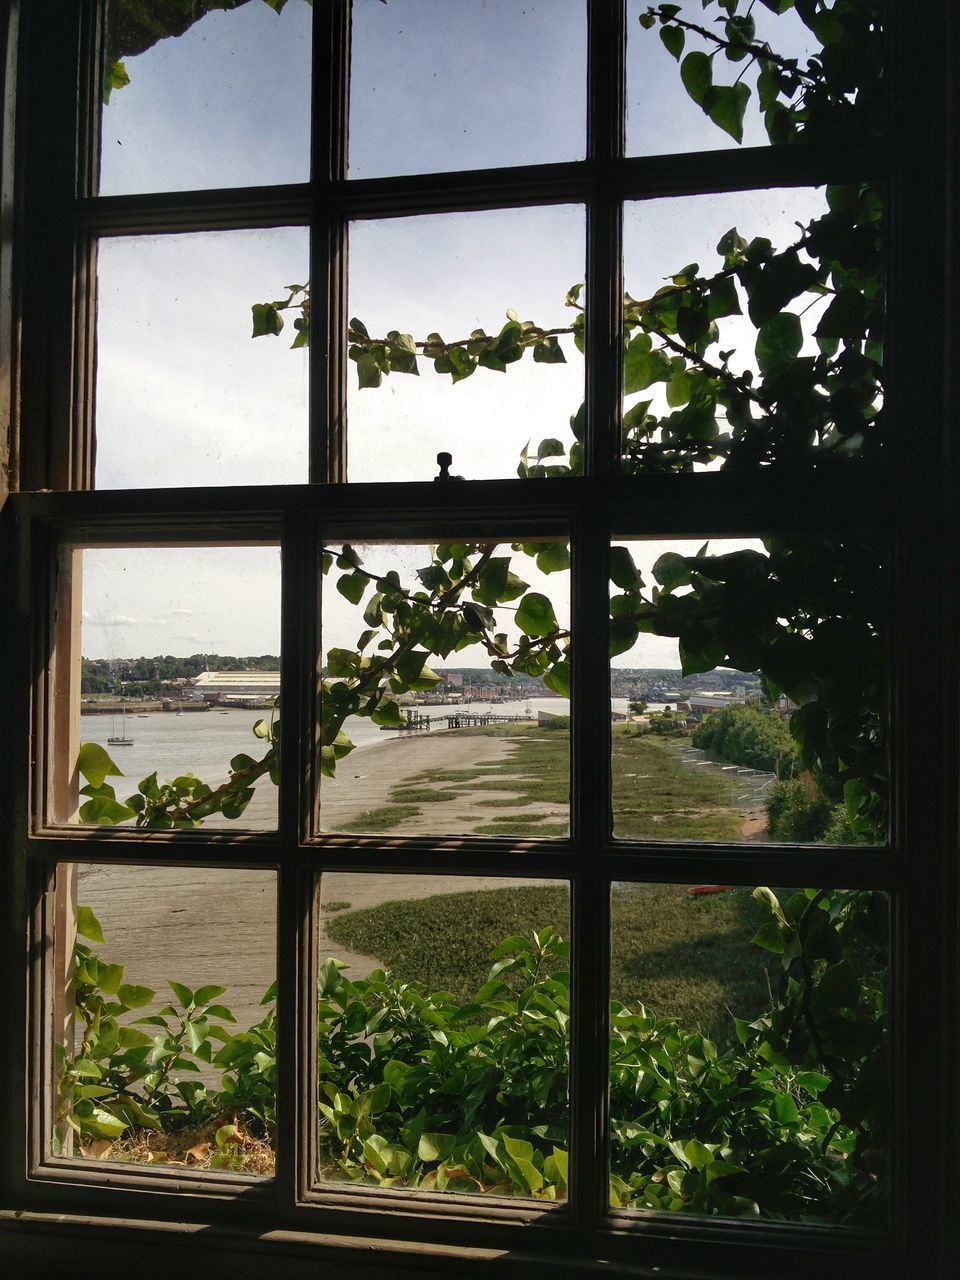 window, indoors, nature, no people, tree, plant, day, architecture, beauty in nature, close-up, sky